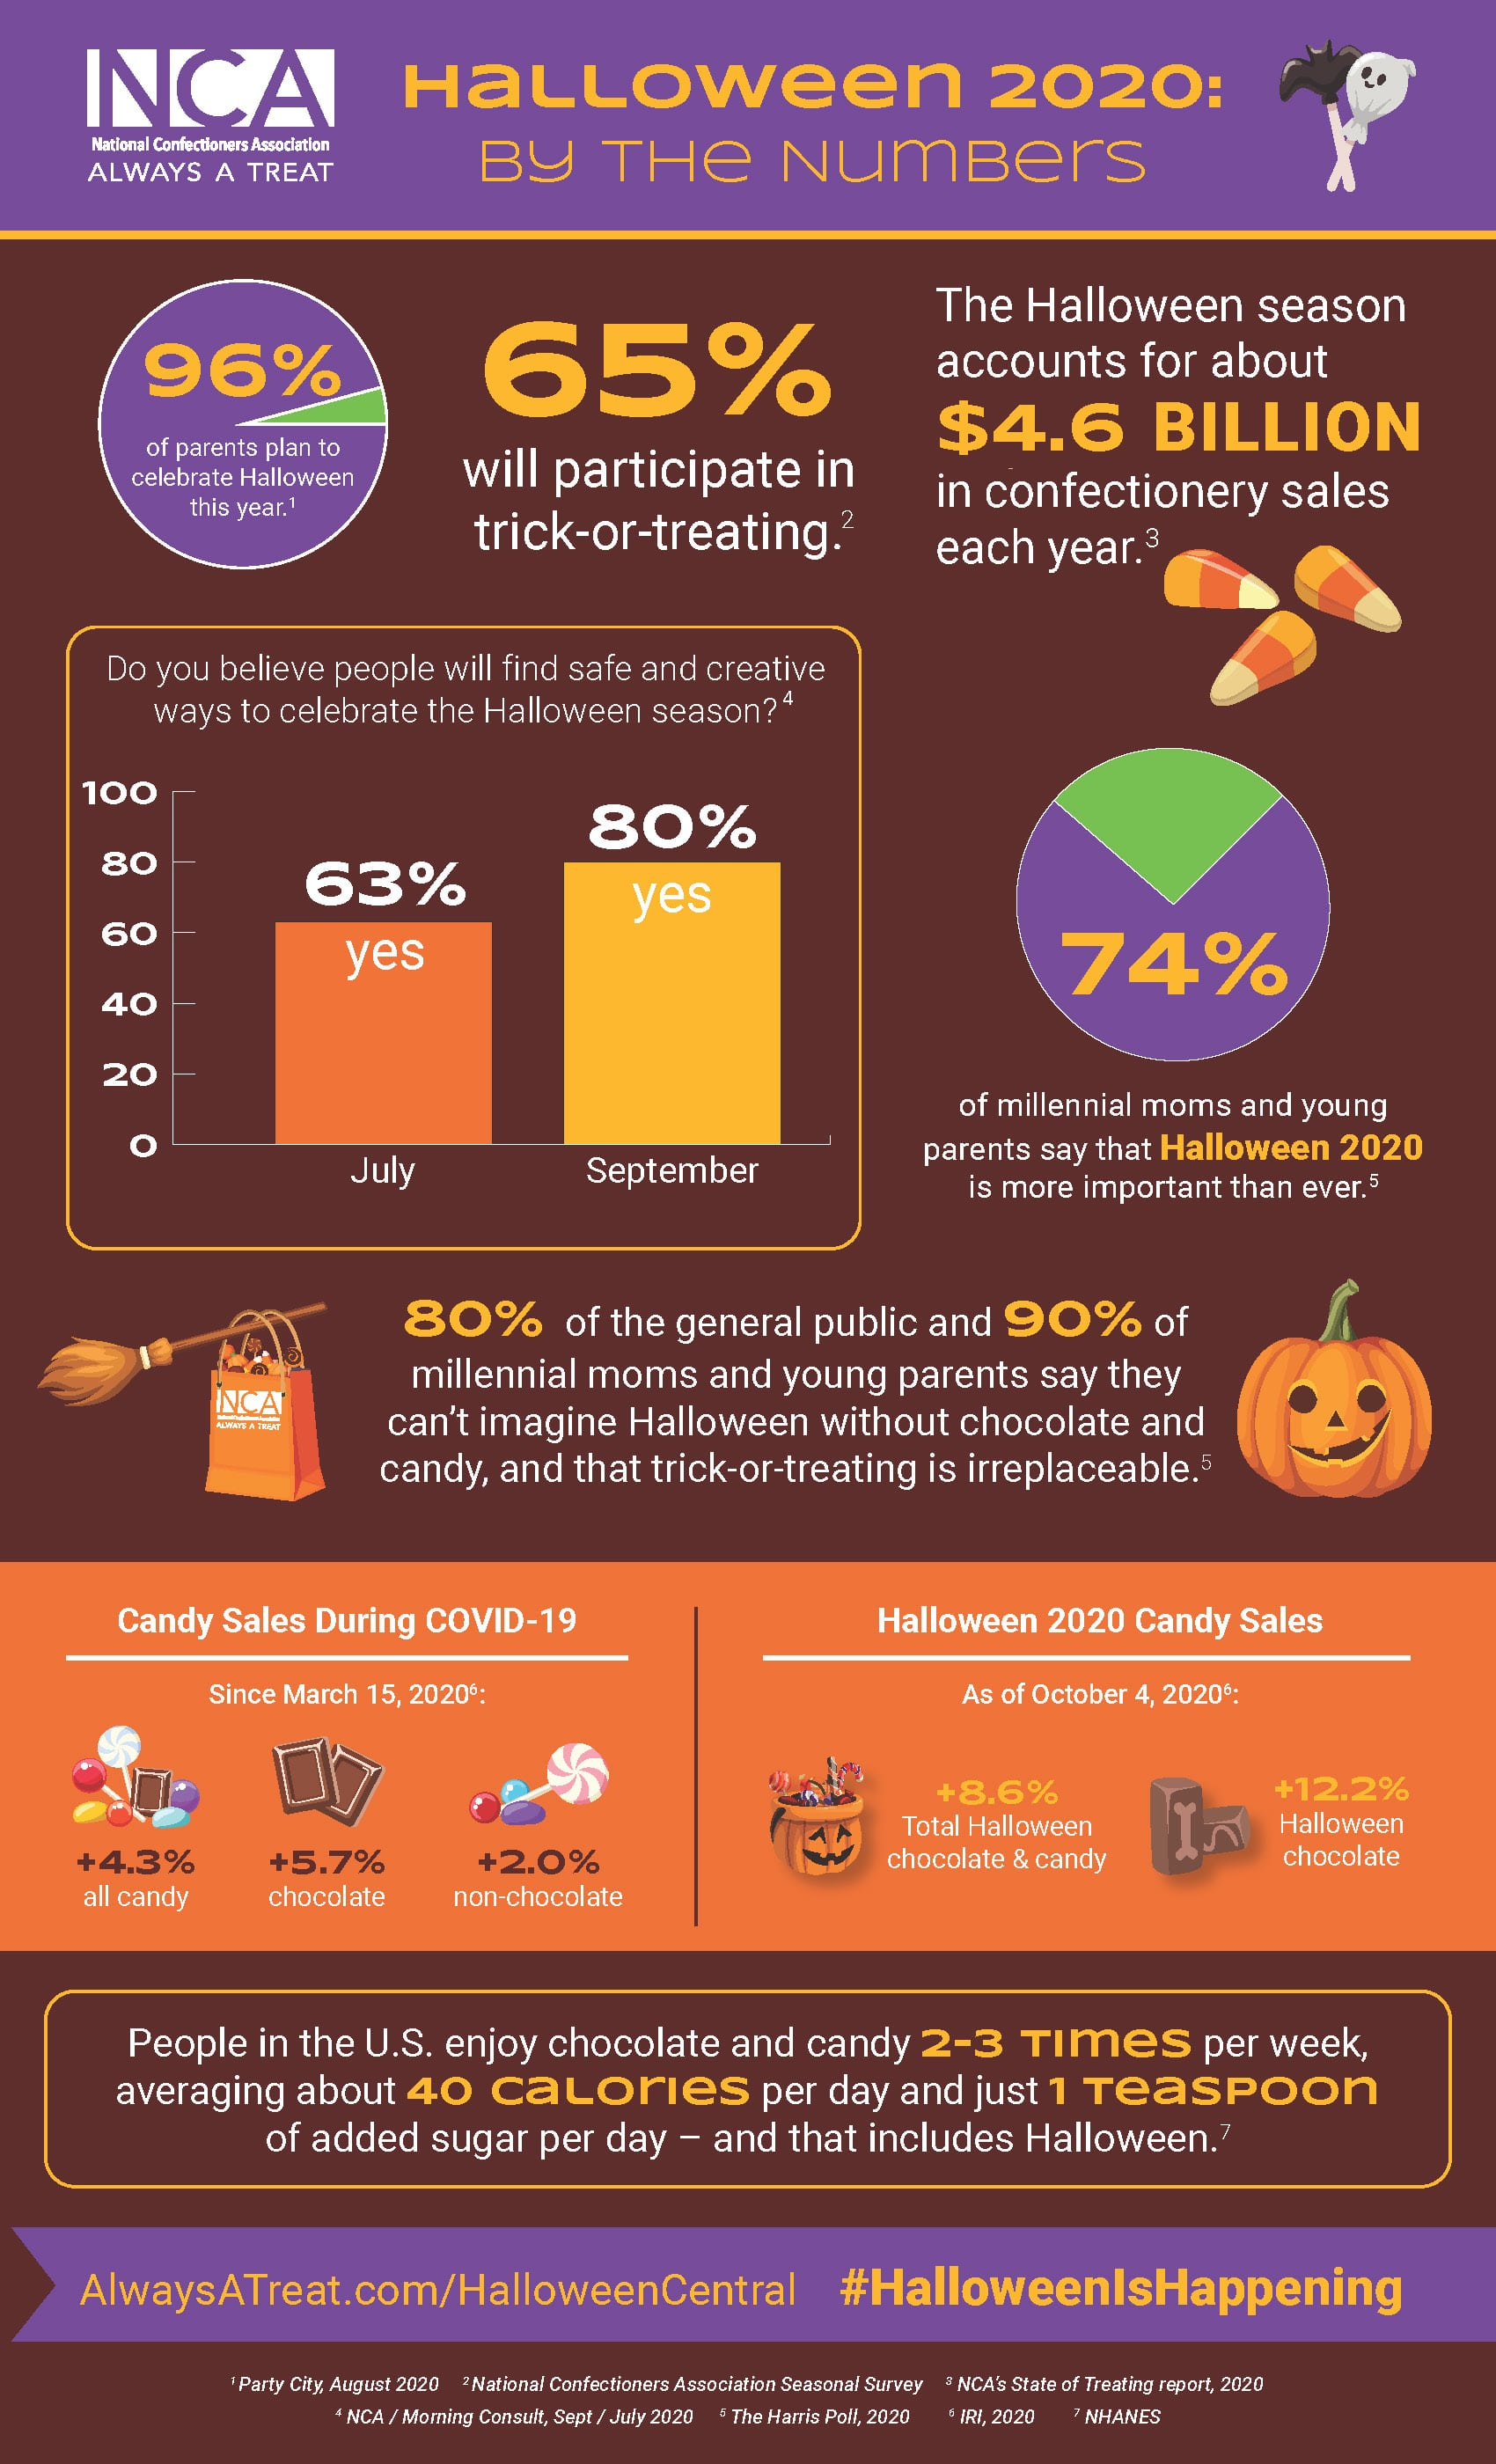 The Halloween season accounts for about $4.6 billion in confectionery sales each year. 96% of parents plan to celebrate Halloween this year. 65% will participate in trick-or-treating.